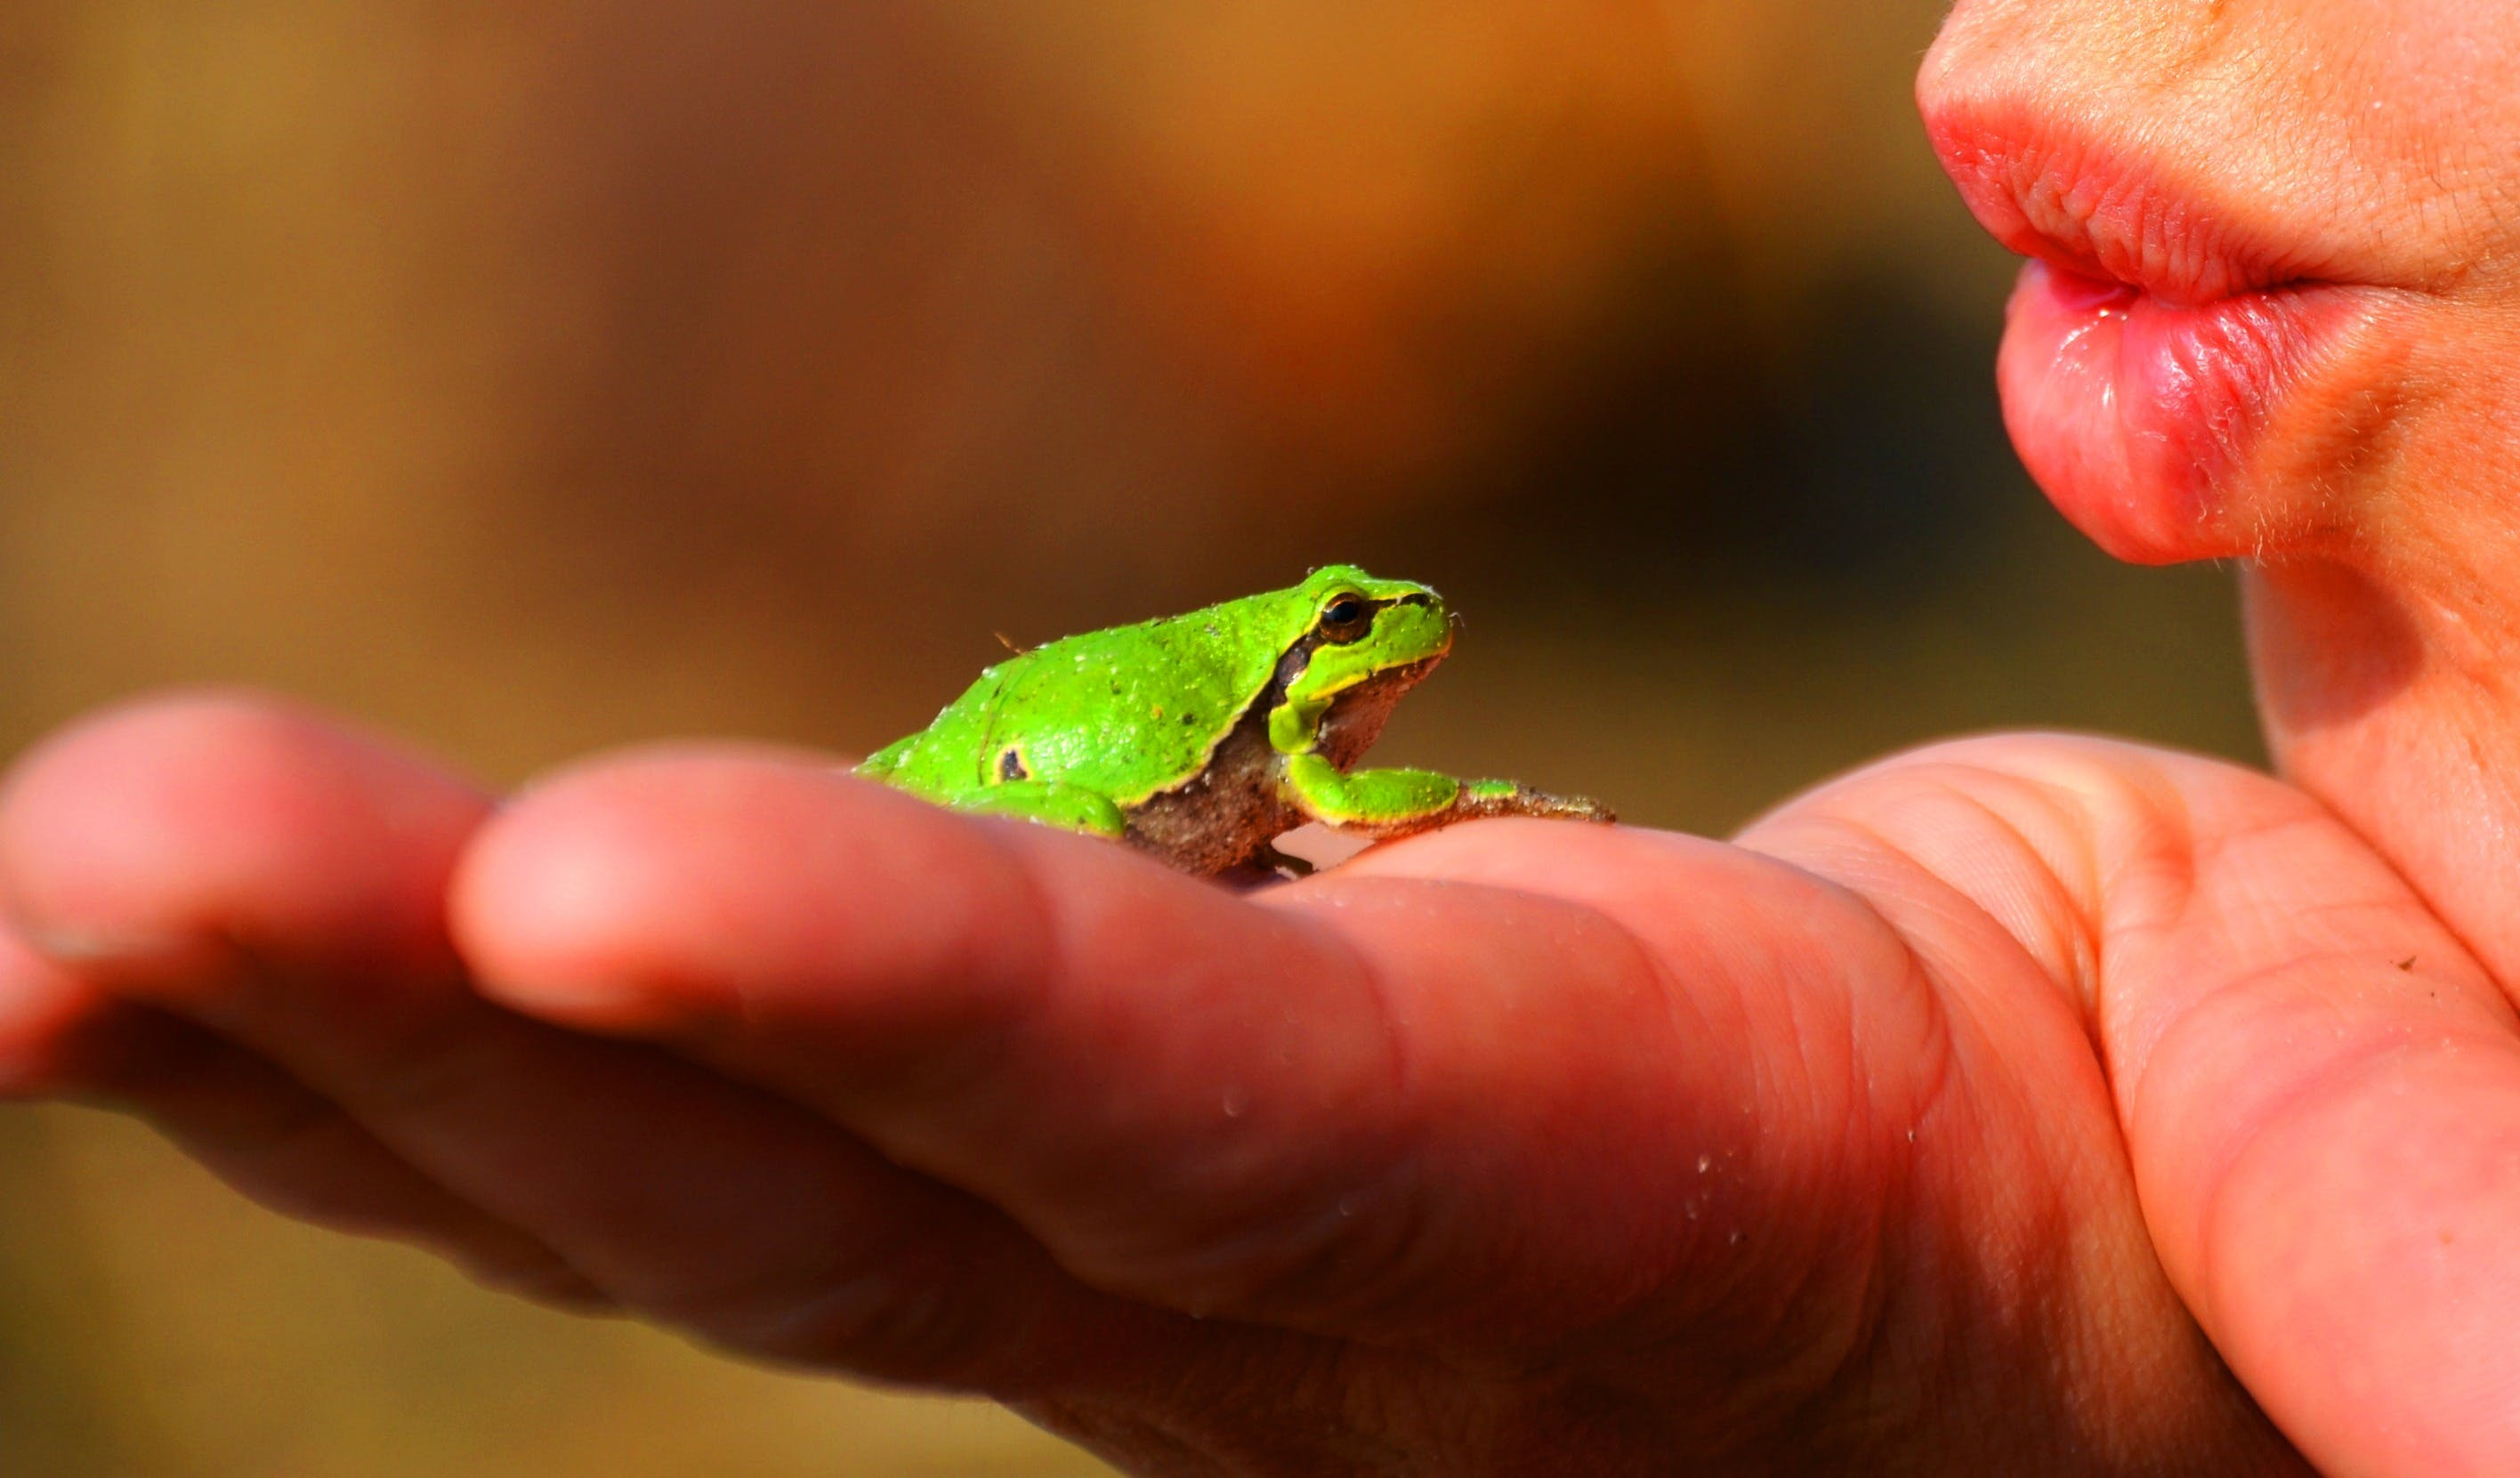 Green Frog on Top of Human Left Hand